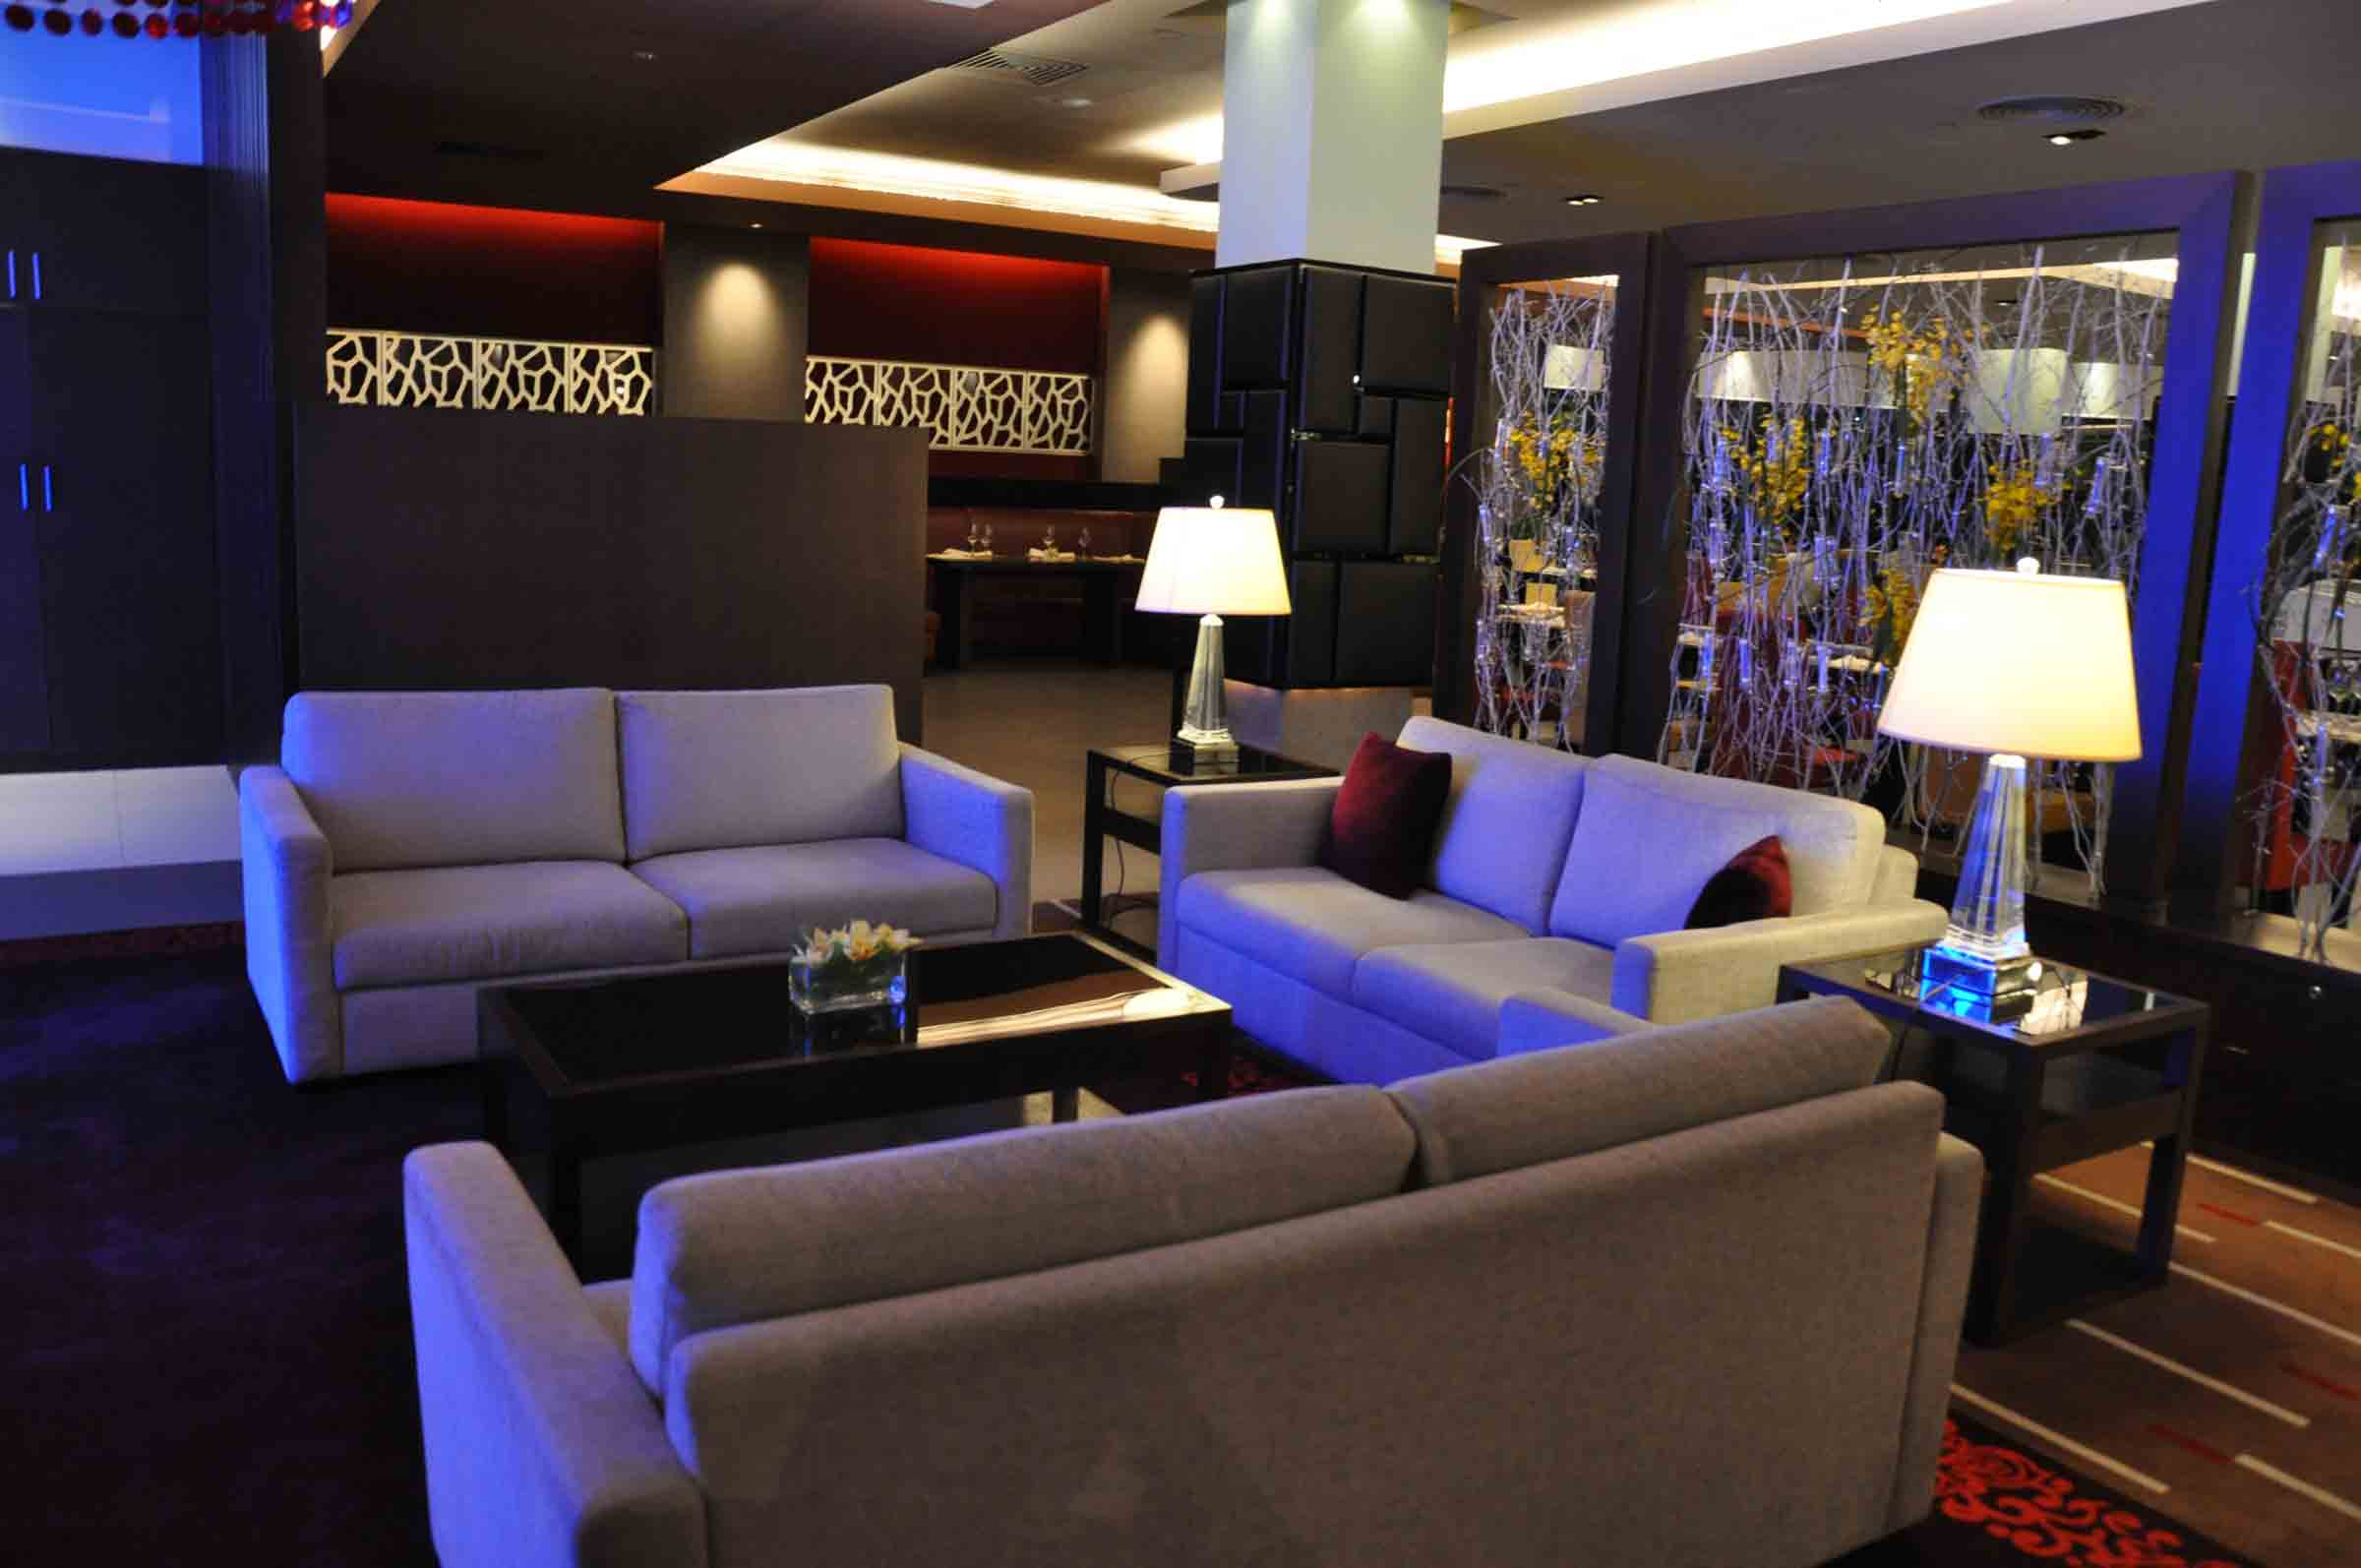 IFT Educational Restaurant lounge section